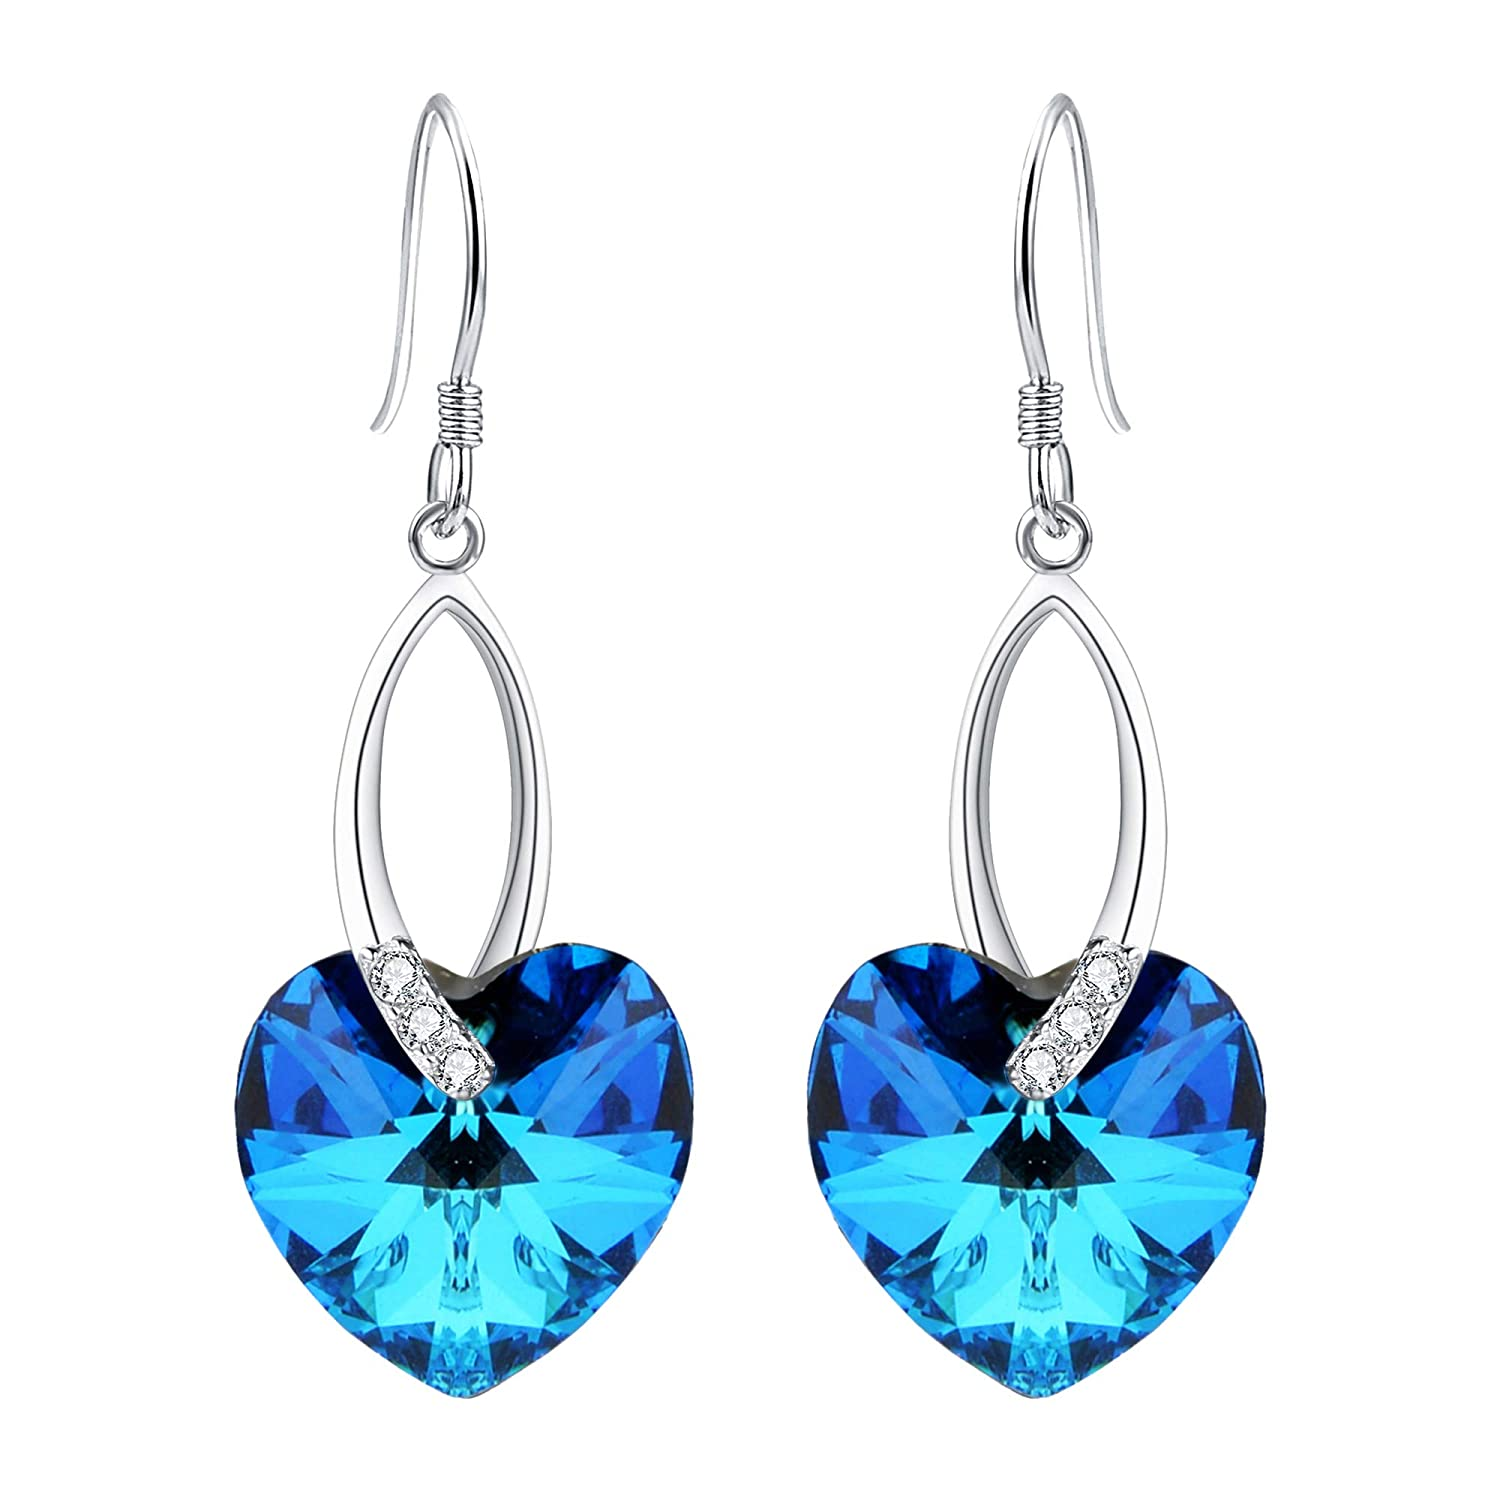 7f96539de Amazon.com: EleQueen 925 Sterling Silver CZ Love Heart French Hook Dangle  Earrings Bermuda Blue Made with Swarovski Crystals: Jewelry